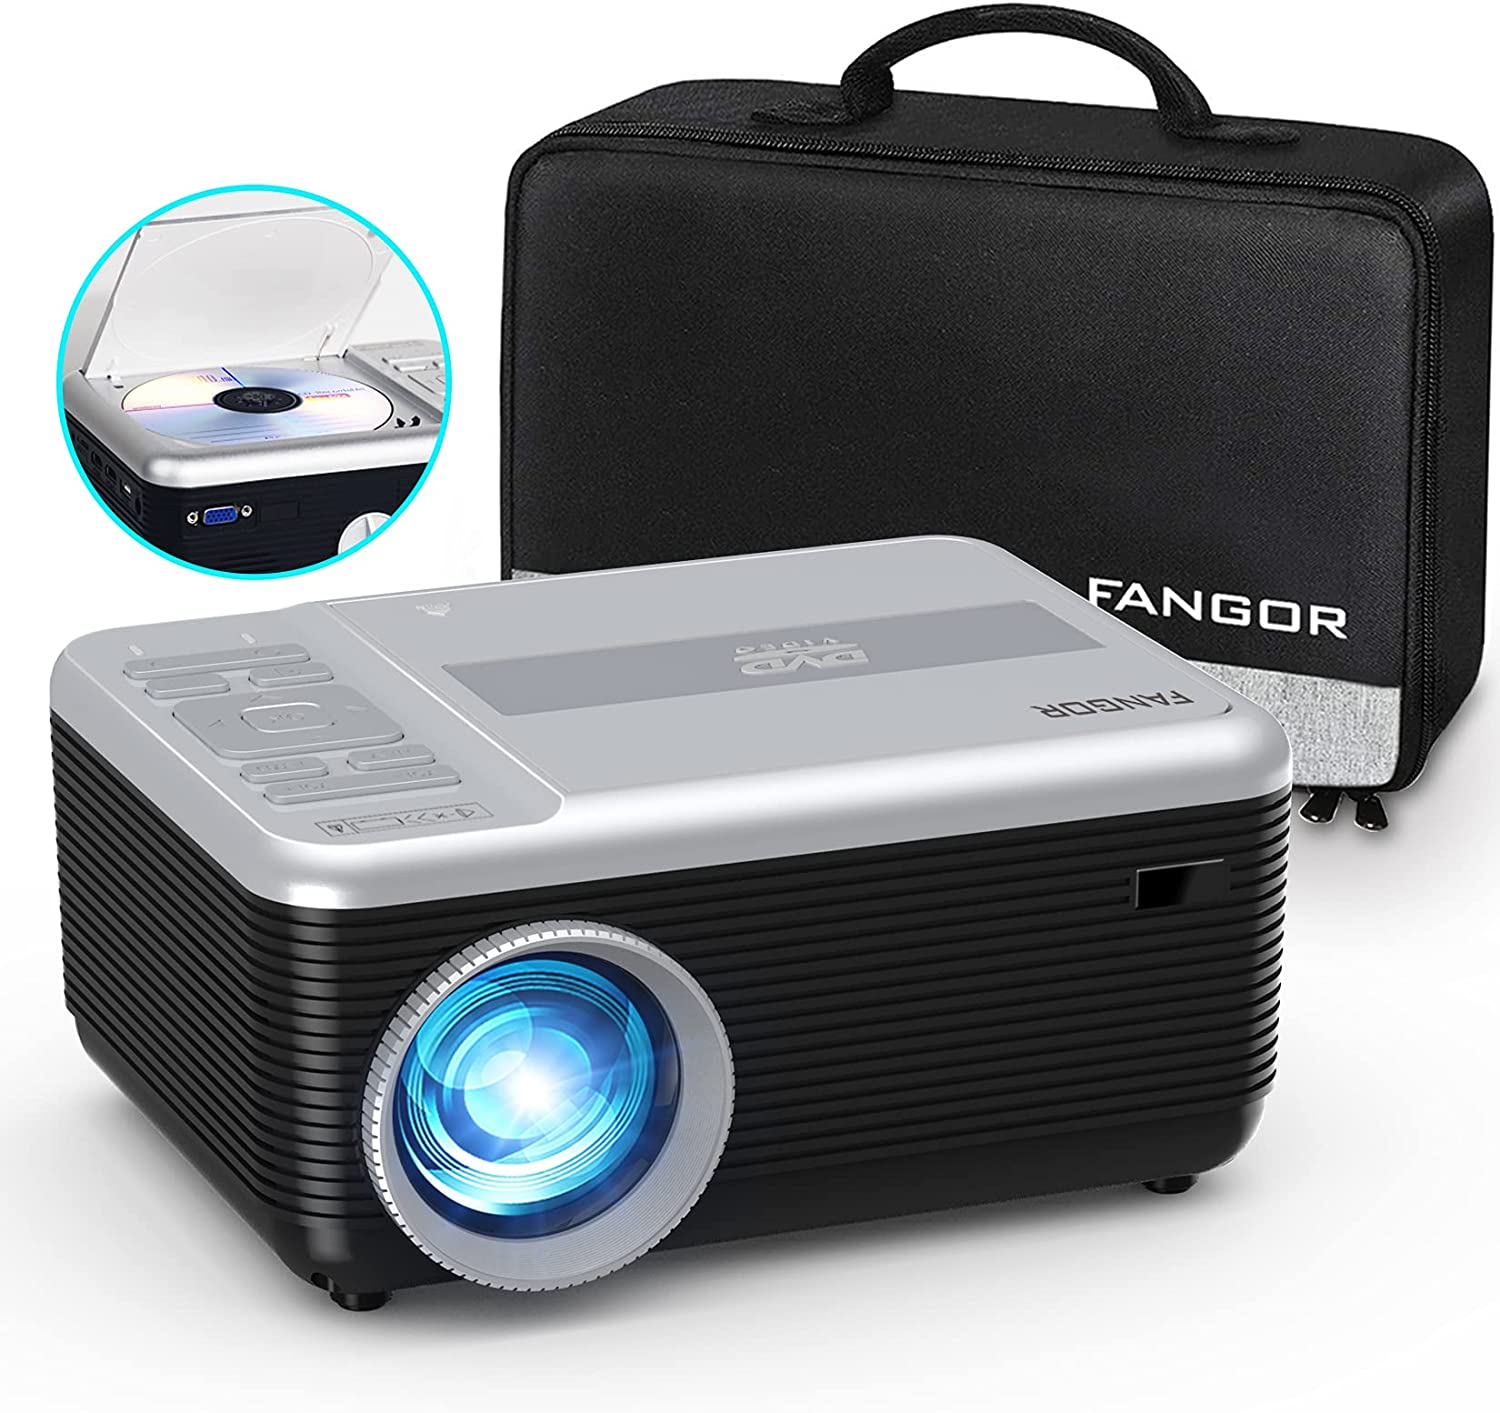 Mini Projector, FANGOR Portable Projector Built in DVD Player, 1080P Support Bluetooth Projector 720P Native, 6000L Video Movie Projector 200